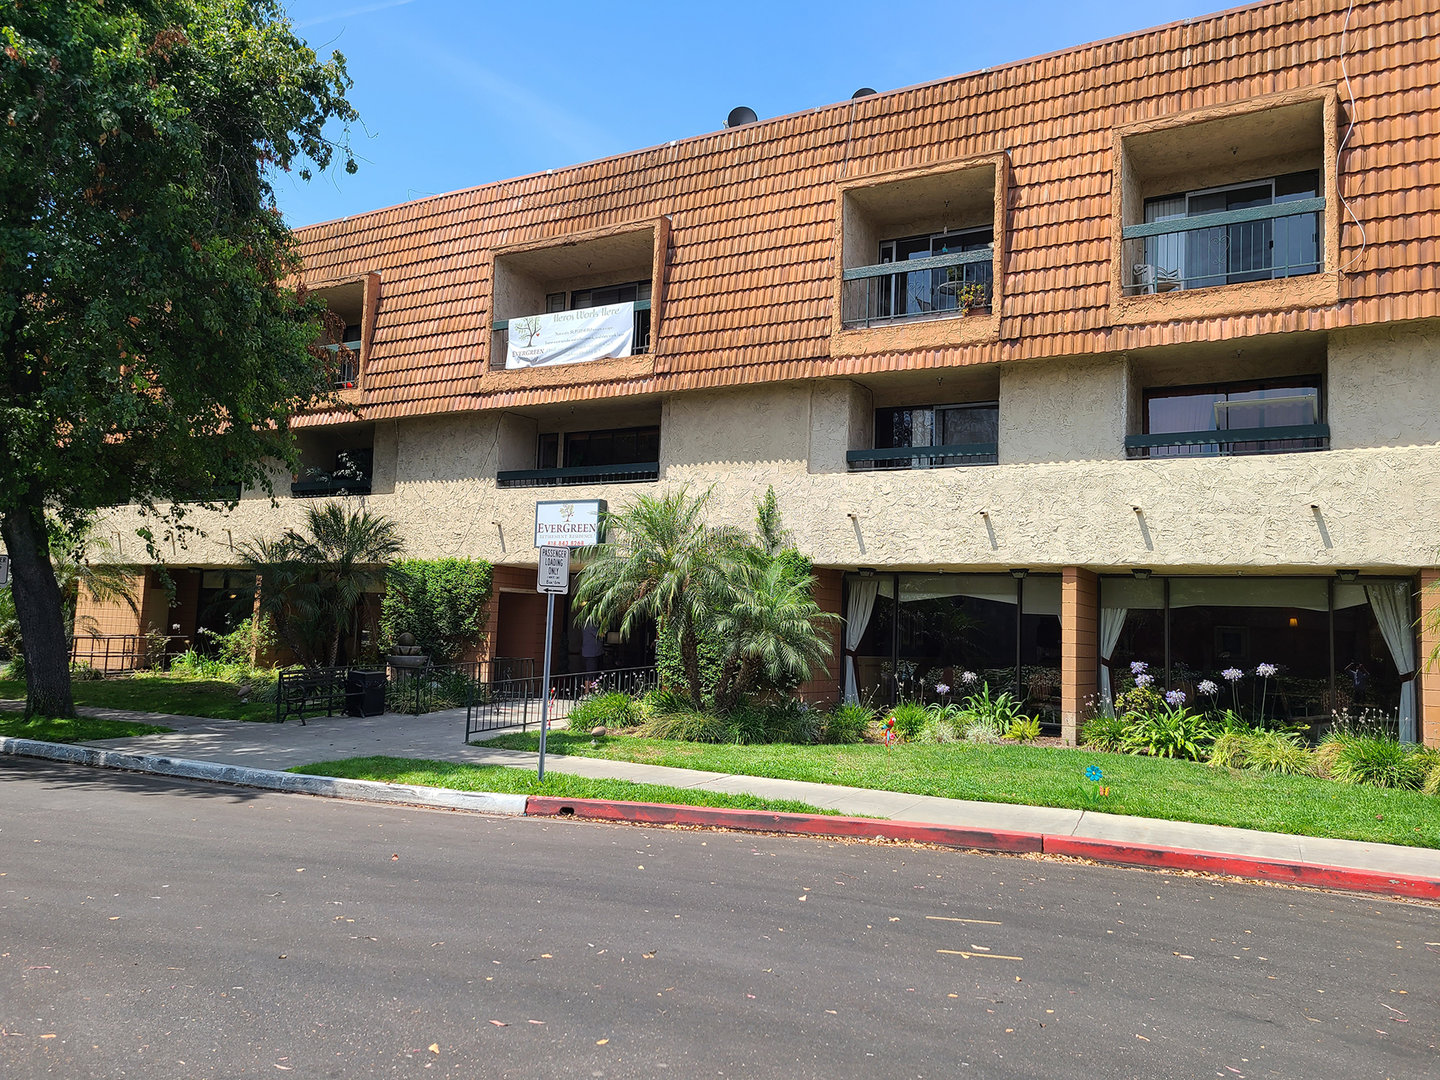 Evergreen Retirement Residence features balconies and a lawn adorned with trees and flowers.